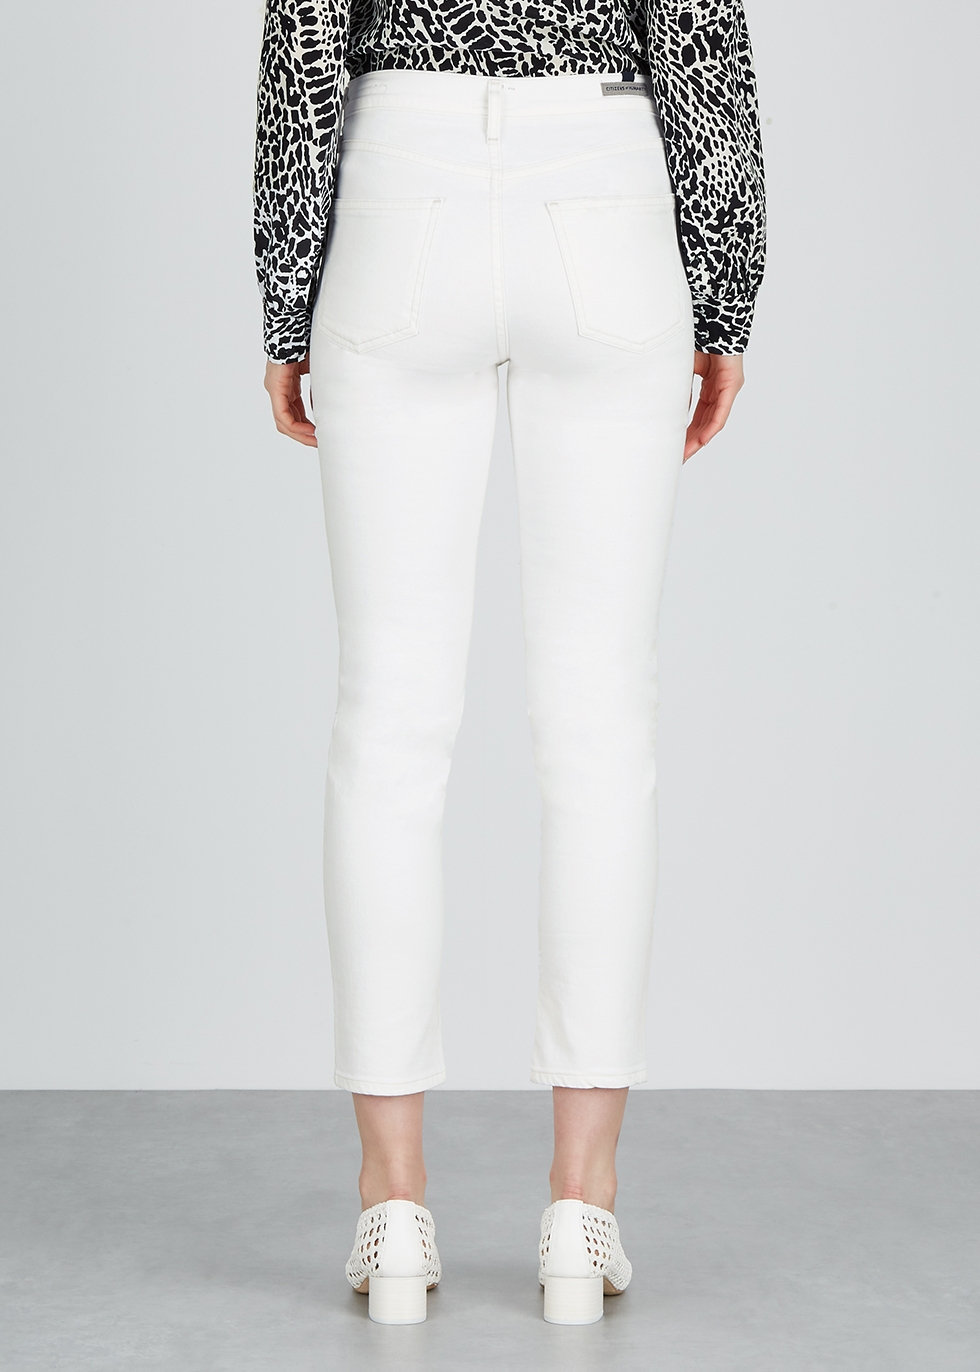 Harlow white slim-leg jeans - Citizens of Humanity